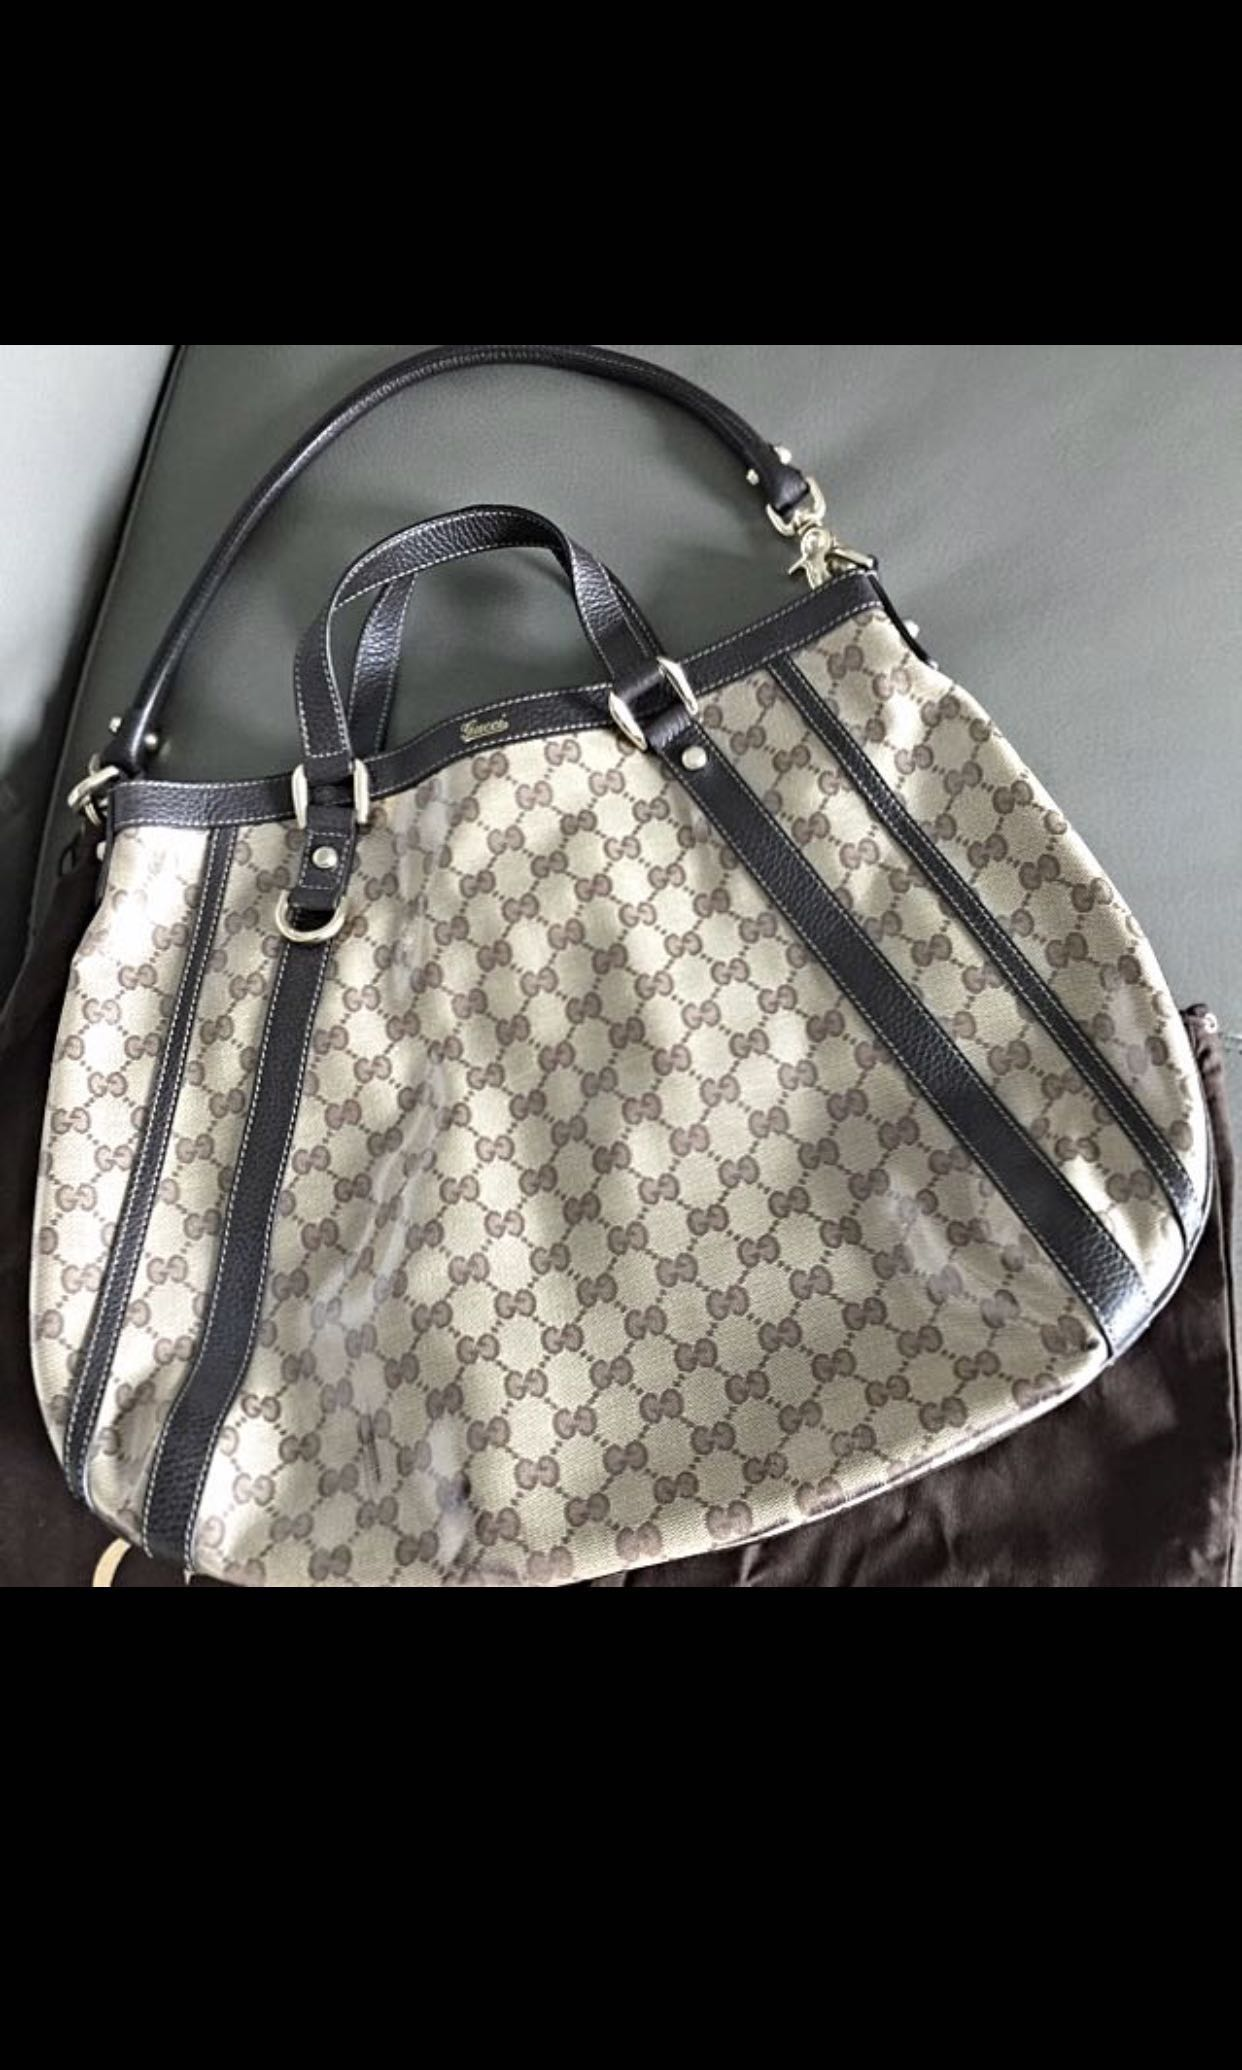 c61ad6506a3f Gucci Double Sling Bag - Brand New, Luxury, Bags & Wallets on Carousell